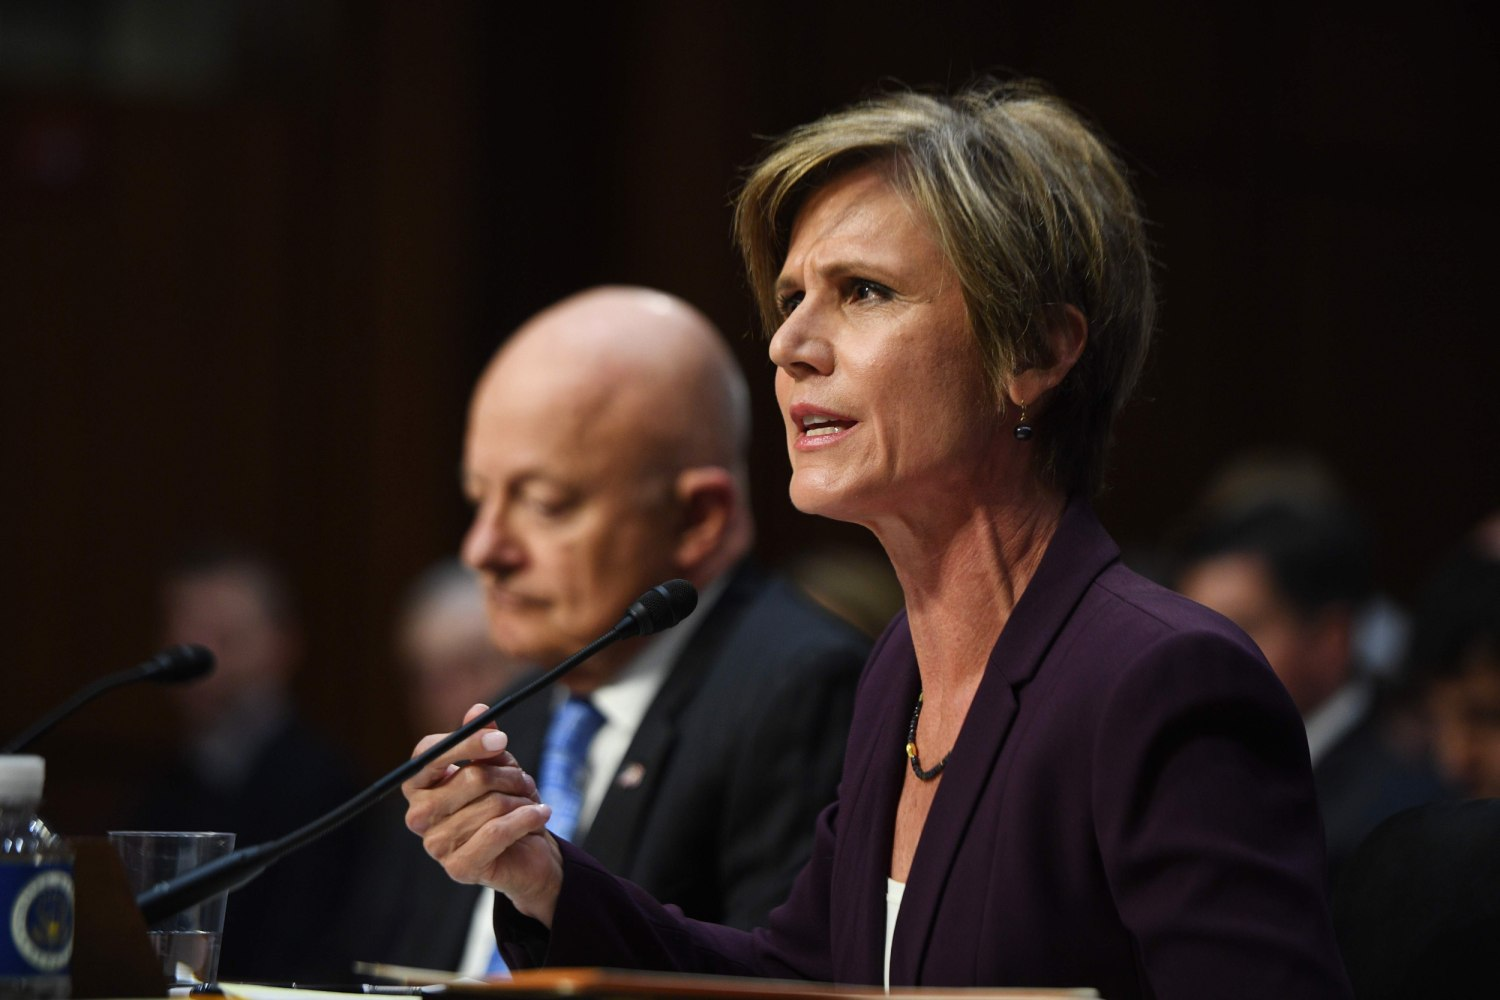 Yates warned White House that Flynn could be blackmailed